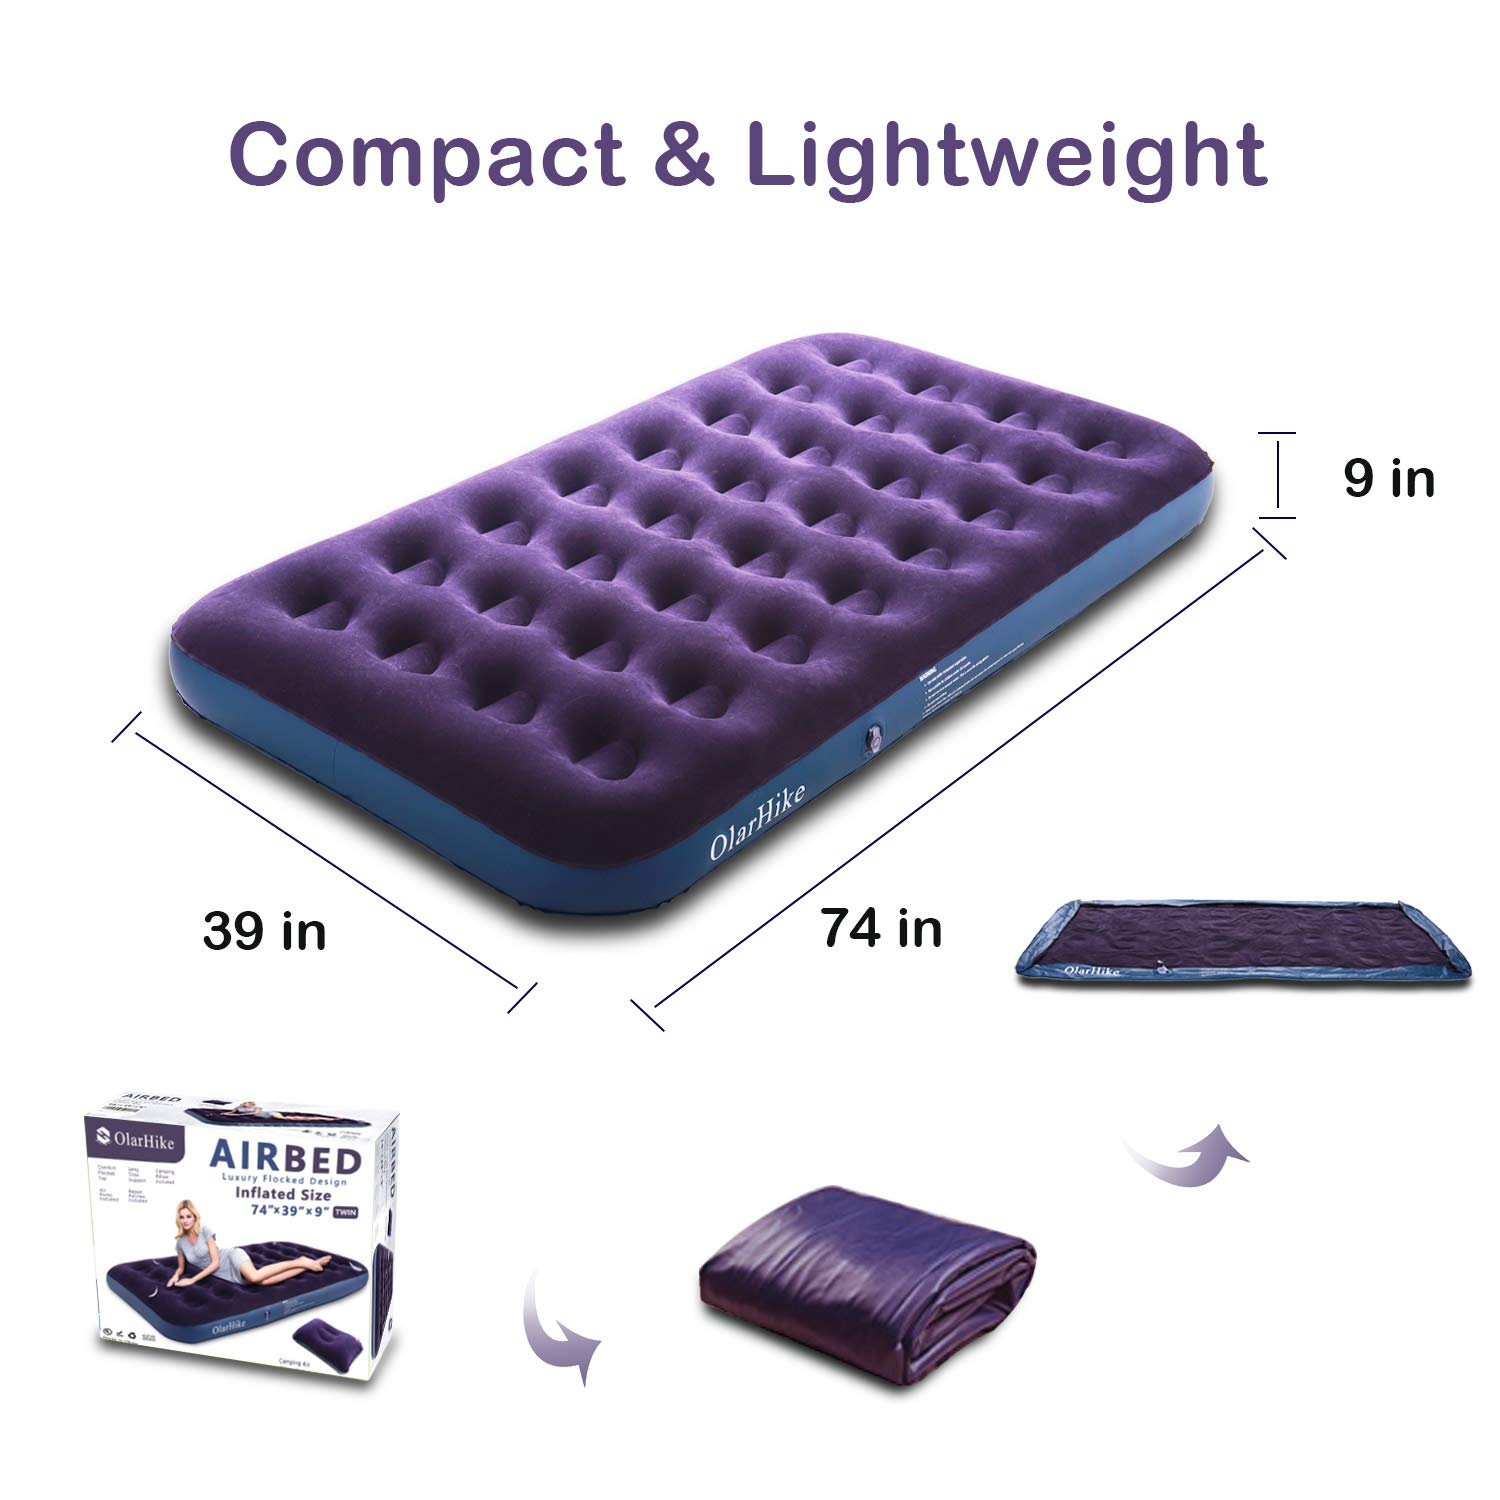 OlarHike Twin Air Mattress with Electric Pump, Portable Air Bed Blow Up Mattress for Camping Car, Repair Patches | Pillow Included by OlarHike (Image #6)